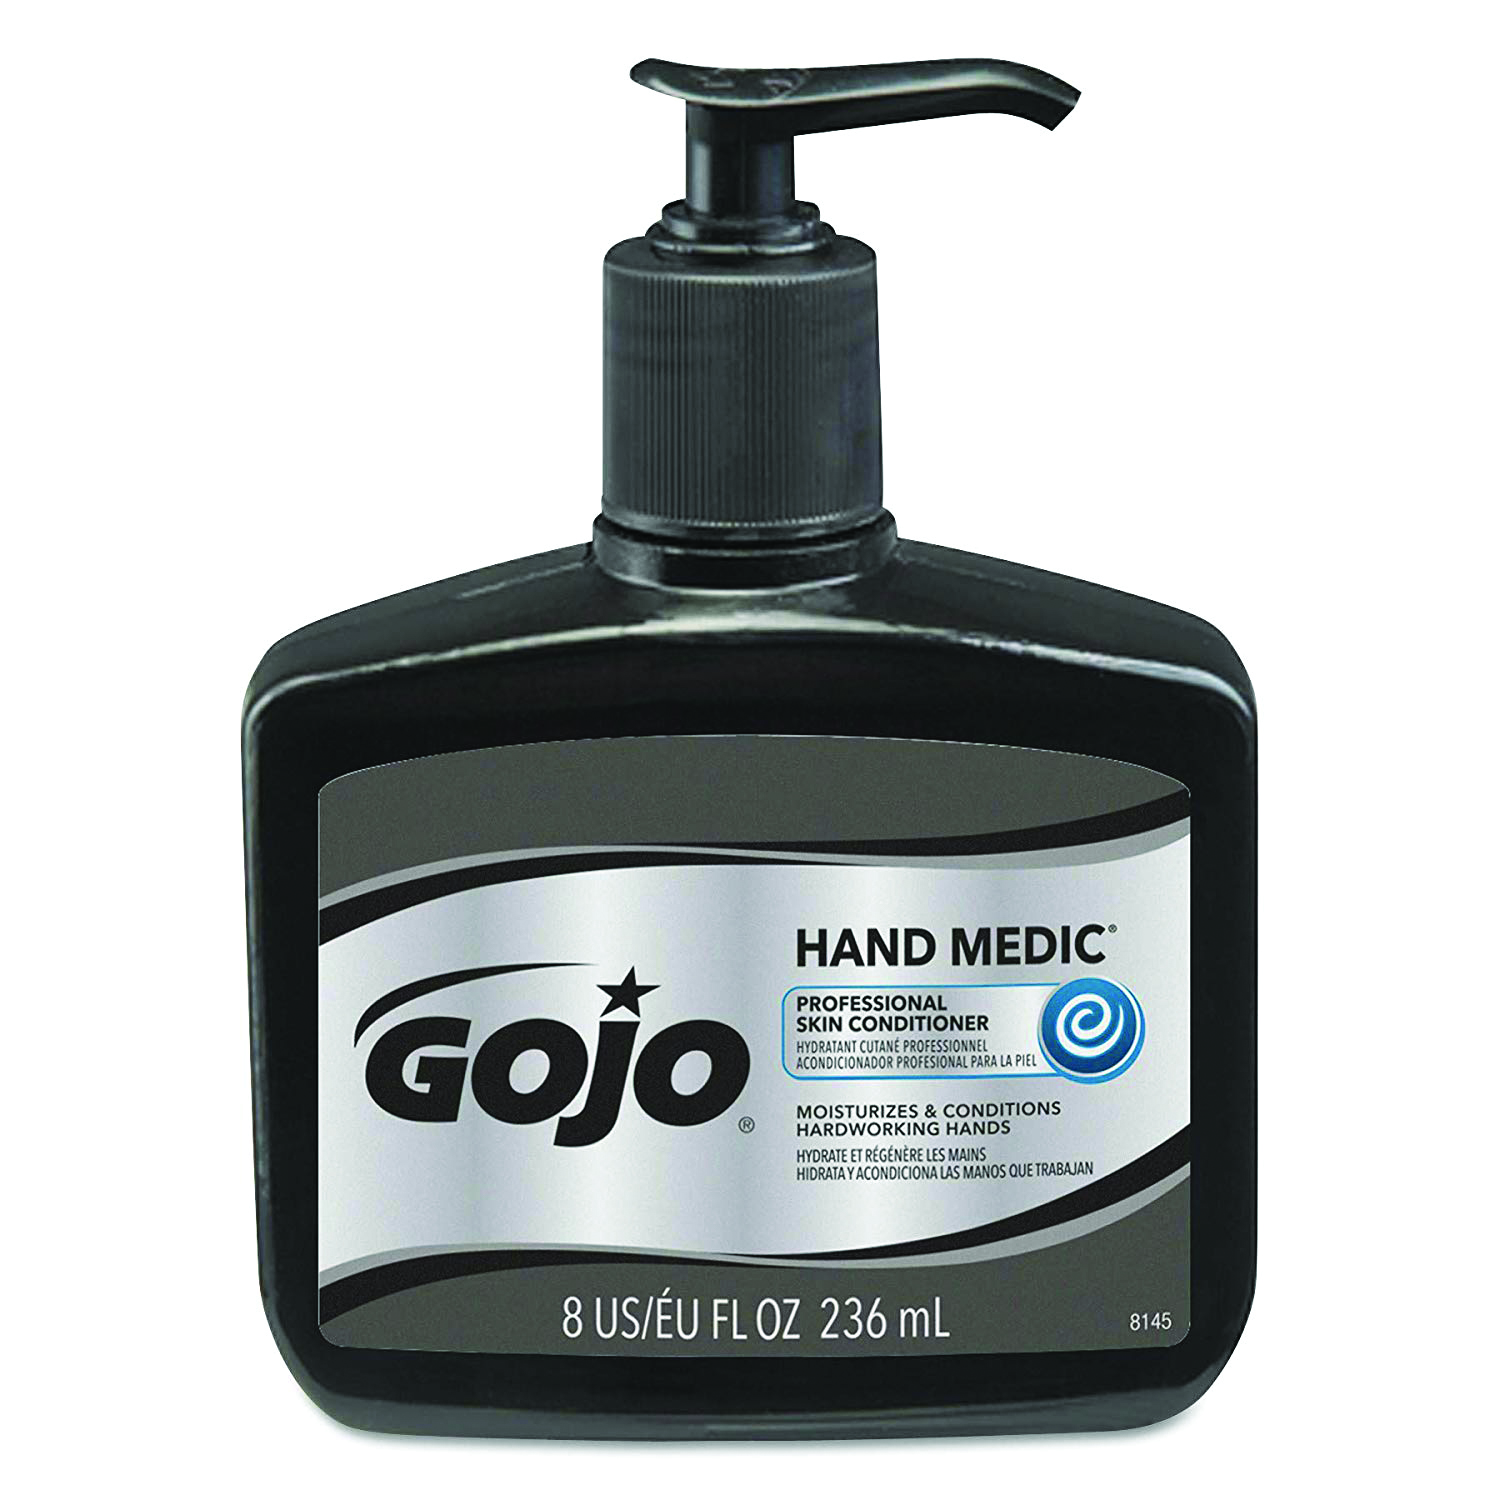 8145-06 - GOJO® HAND MEDIC® Professional  Skin Conditioner-8 fl oz Bottle w/ Pump Disp-----UOM: 6/CS